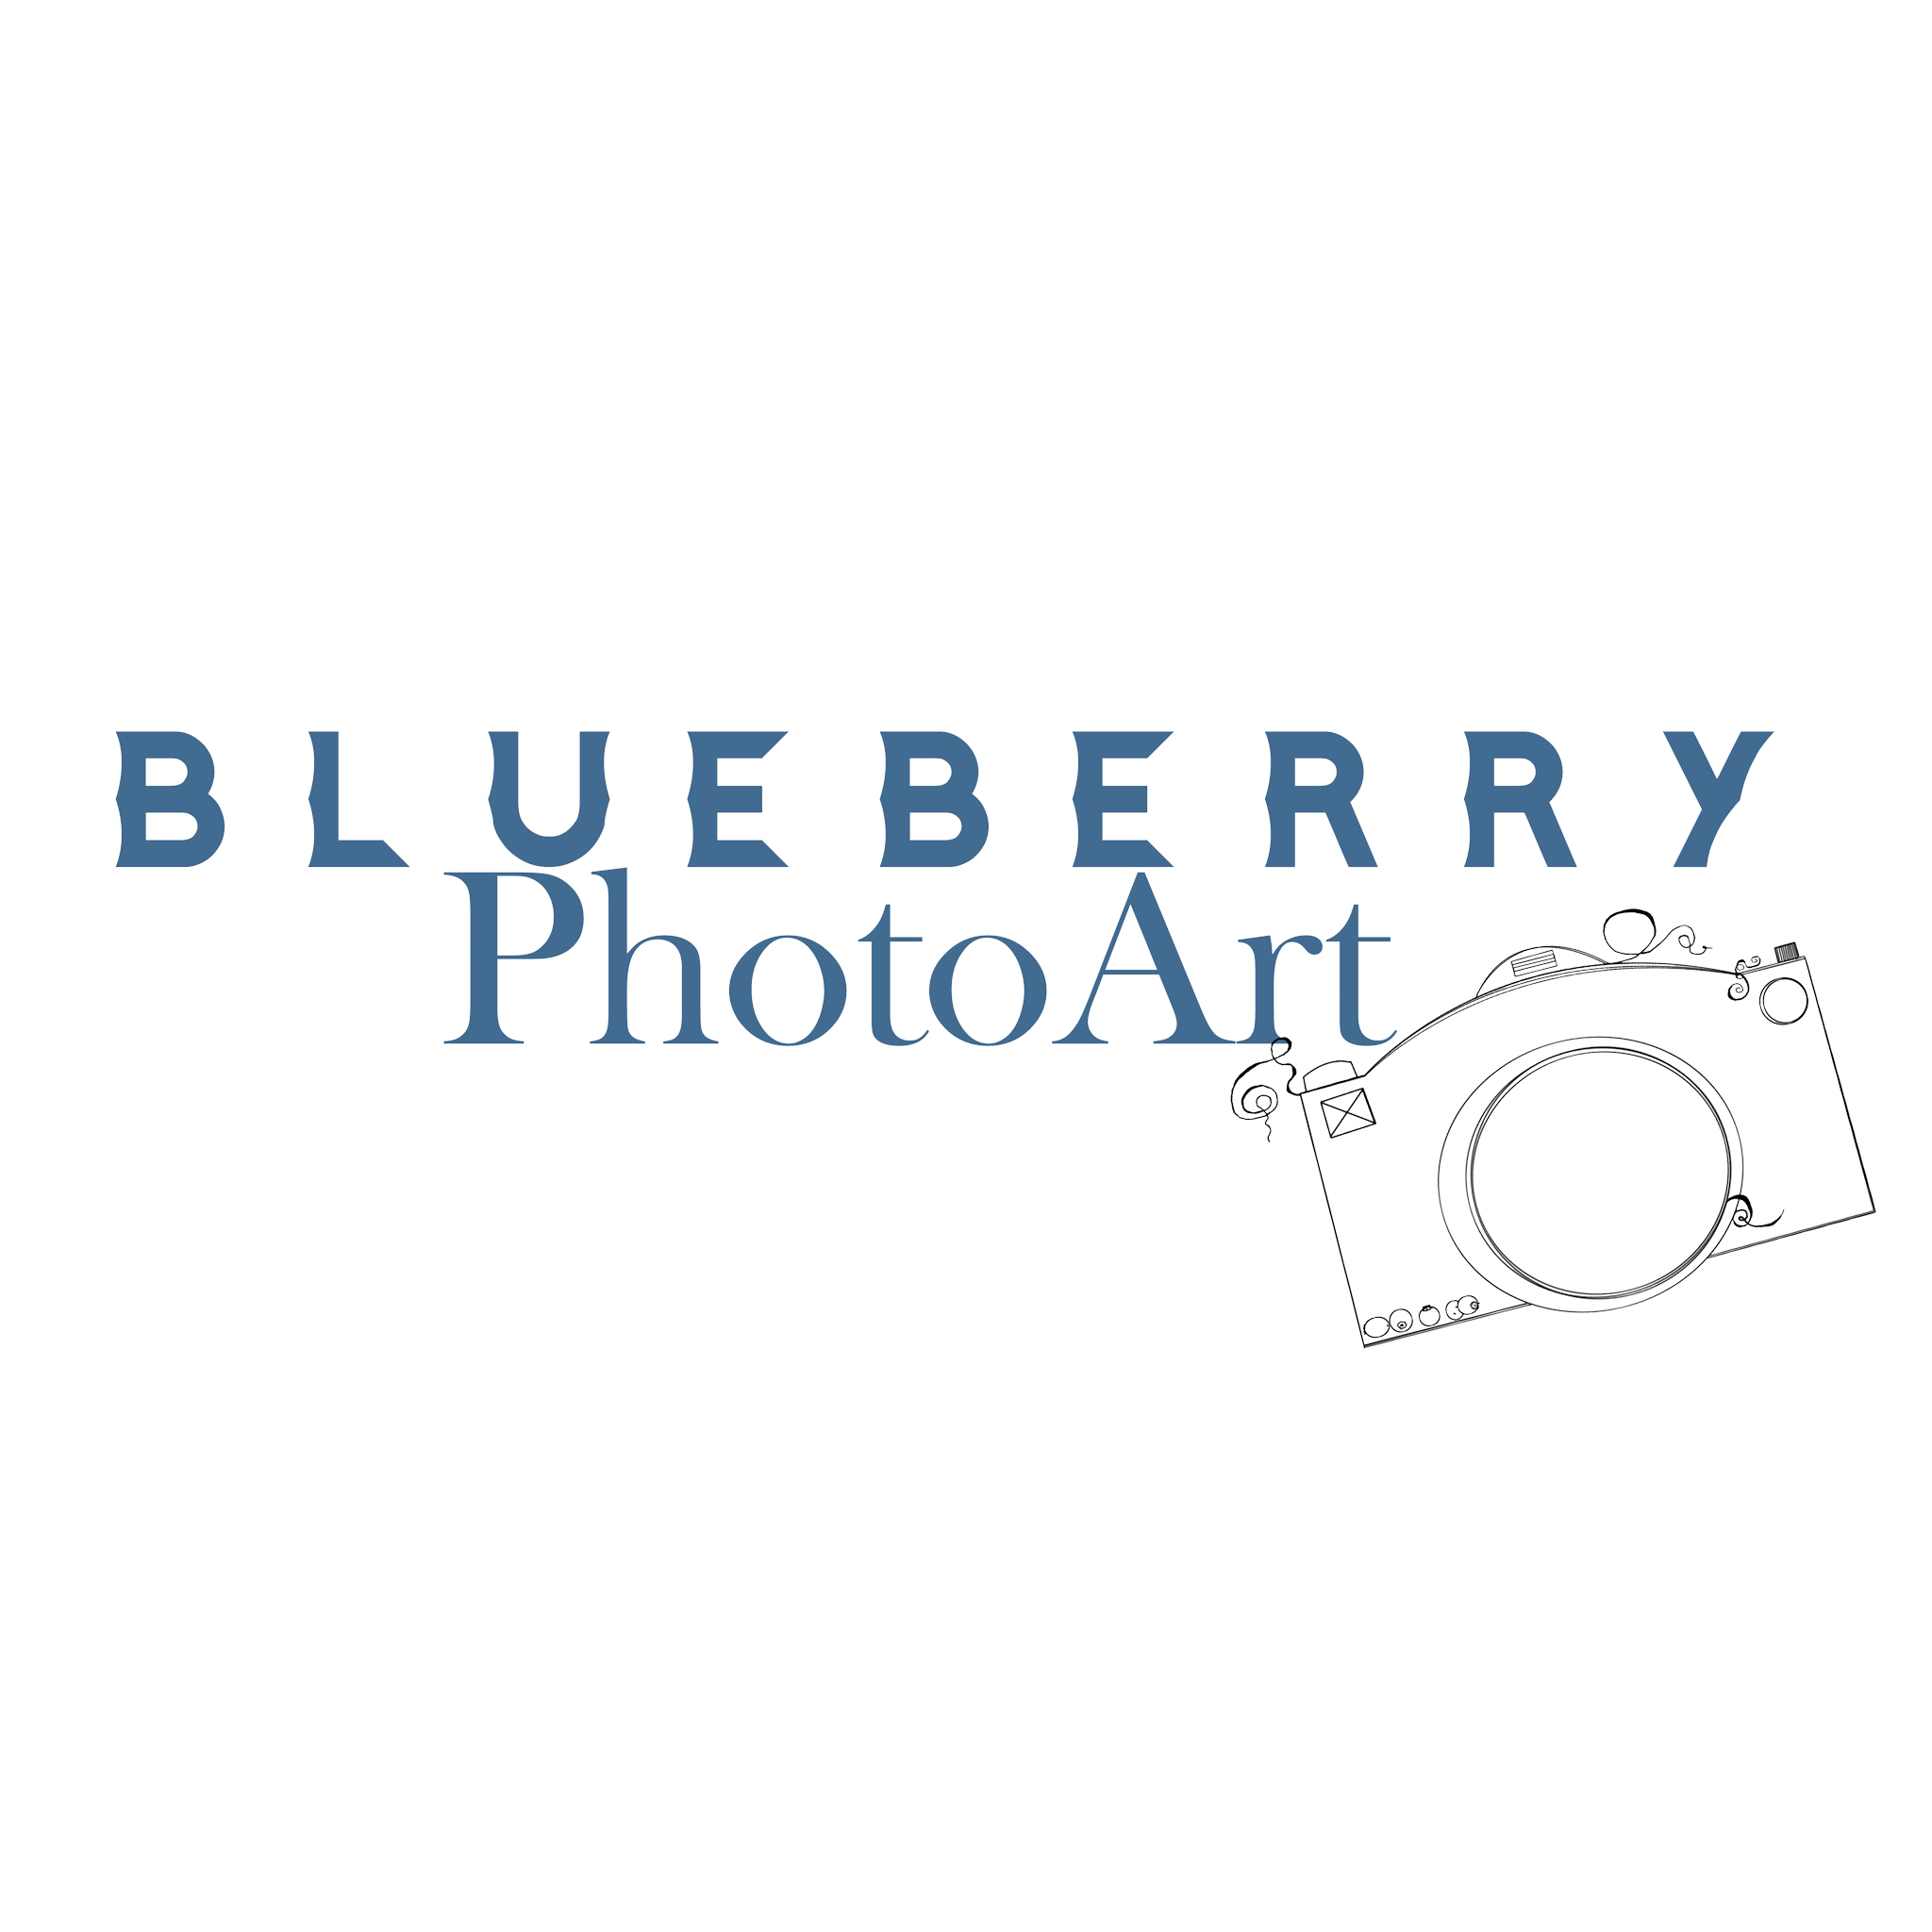 Blueberry PhotoArt